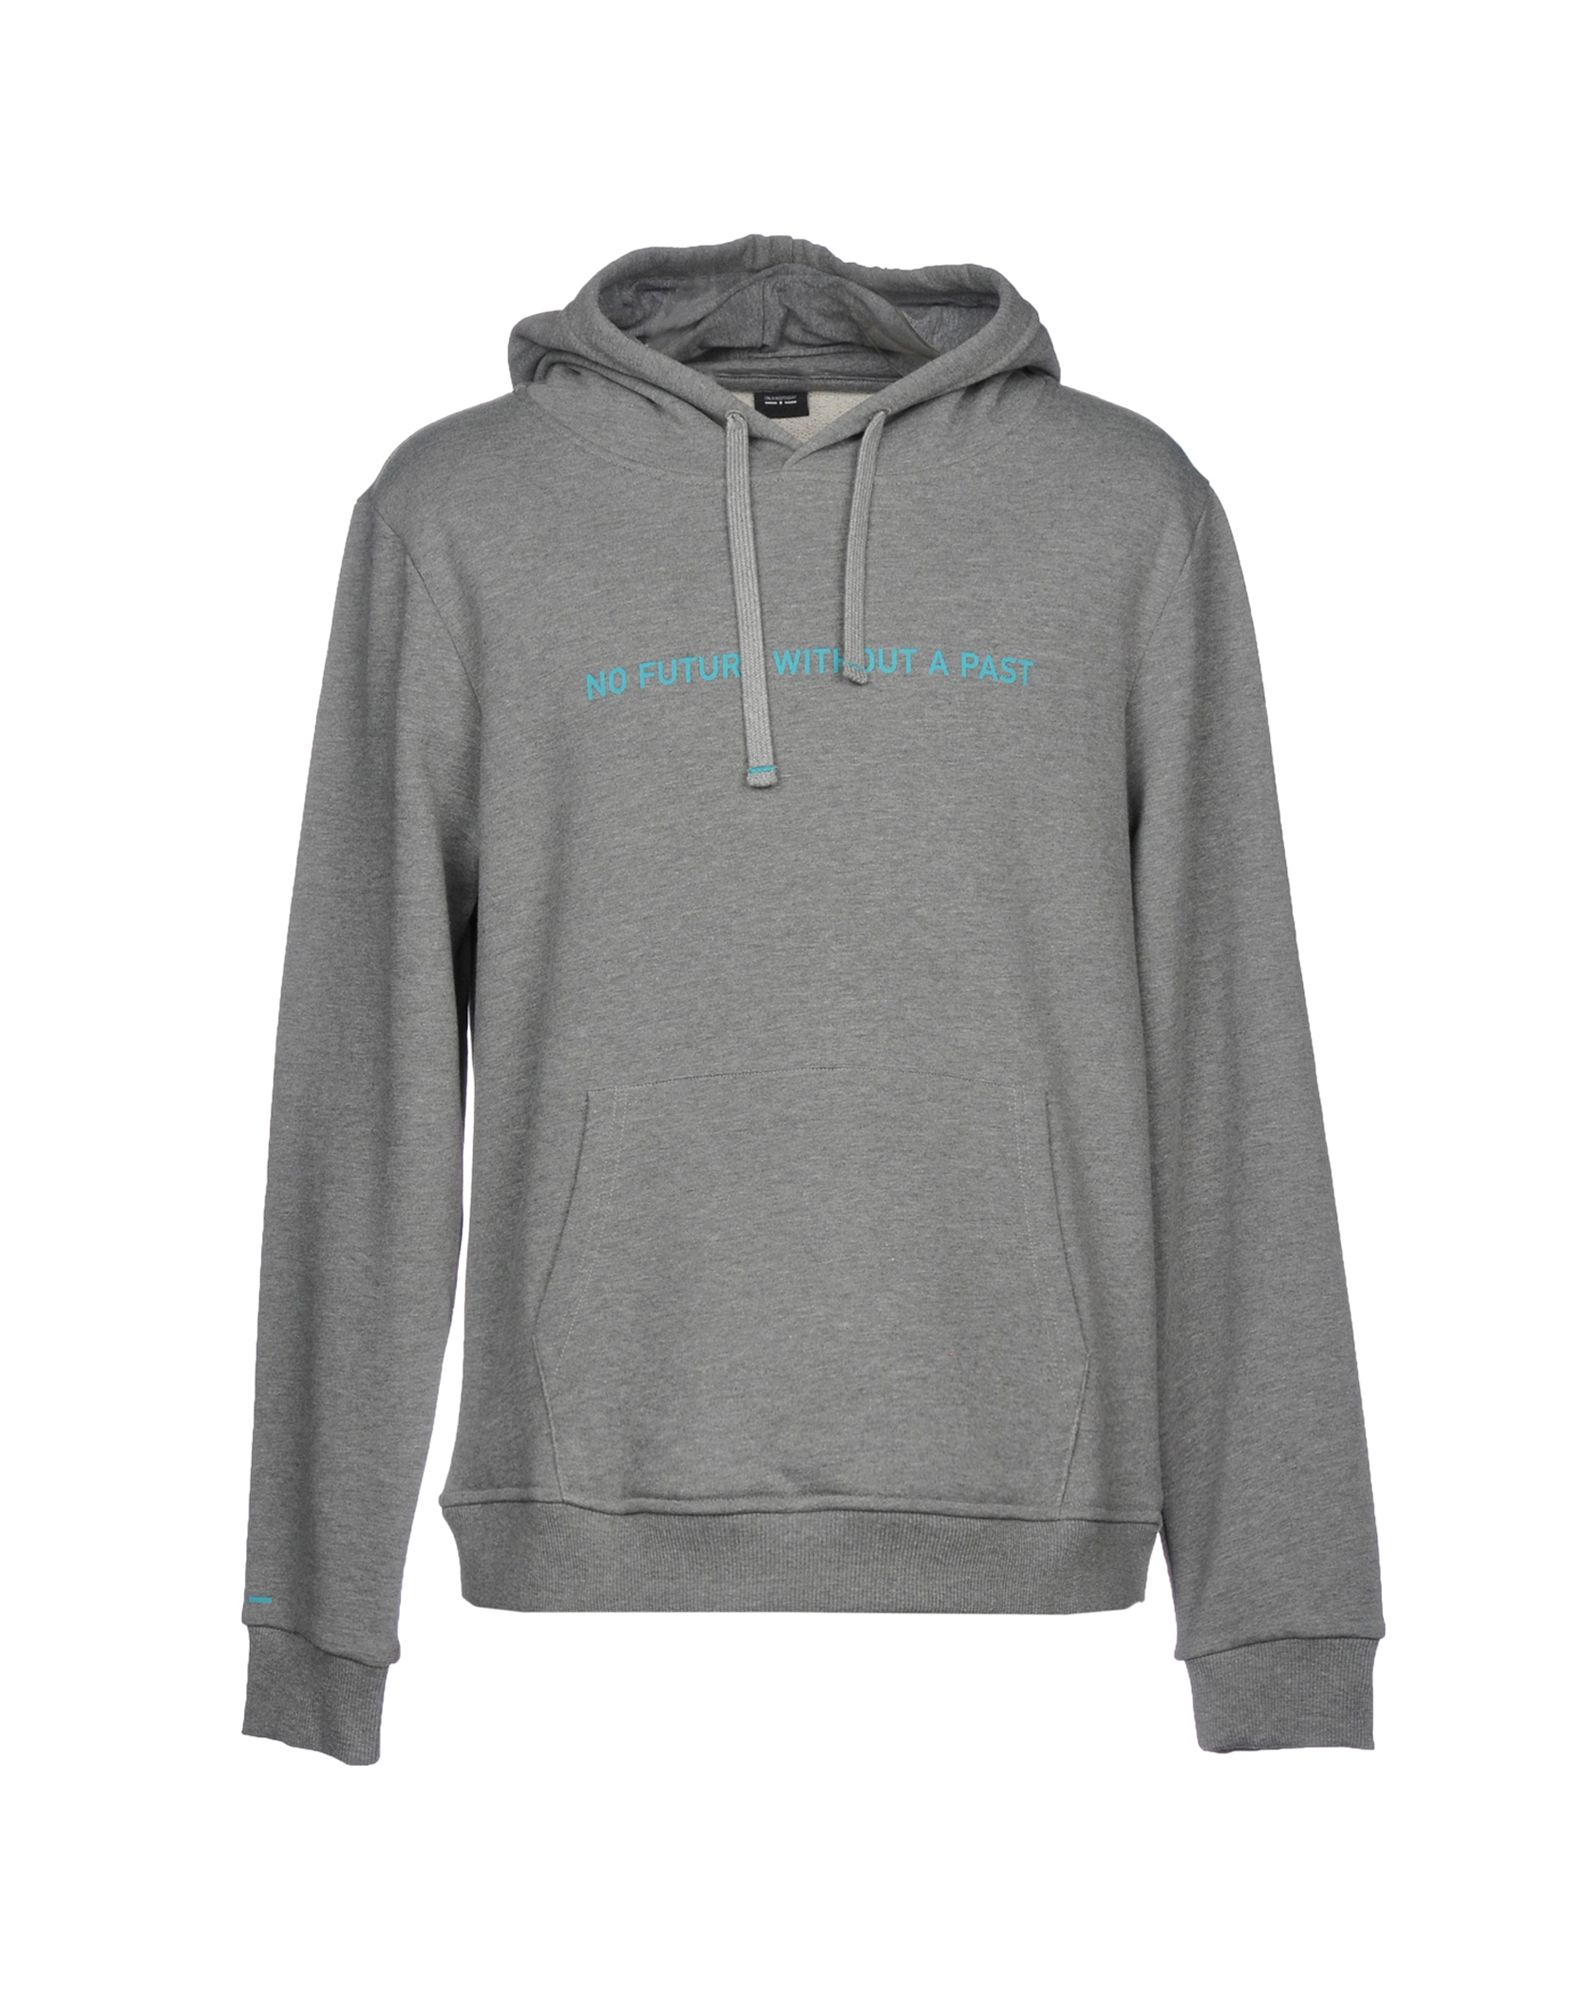 ITALIA INDEPENDENT Hooded Sweatshirt in Grey